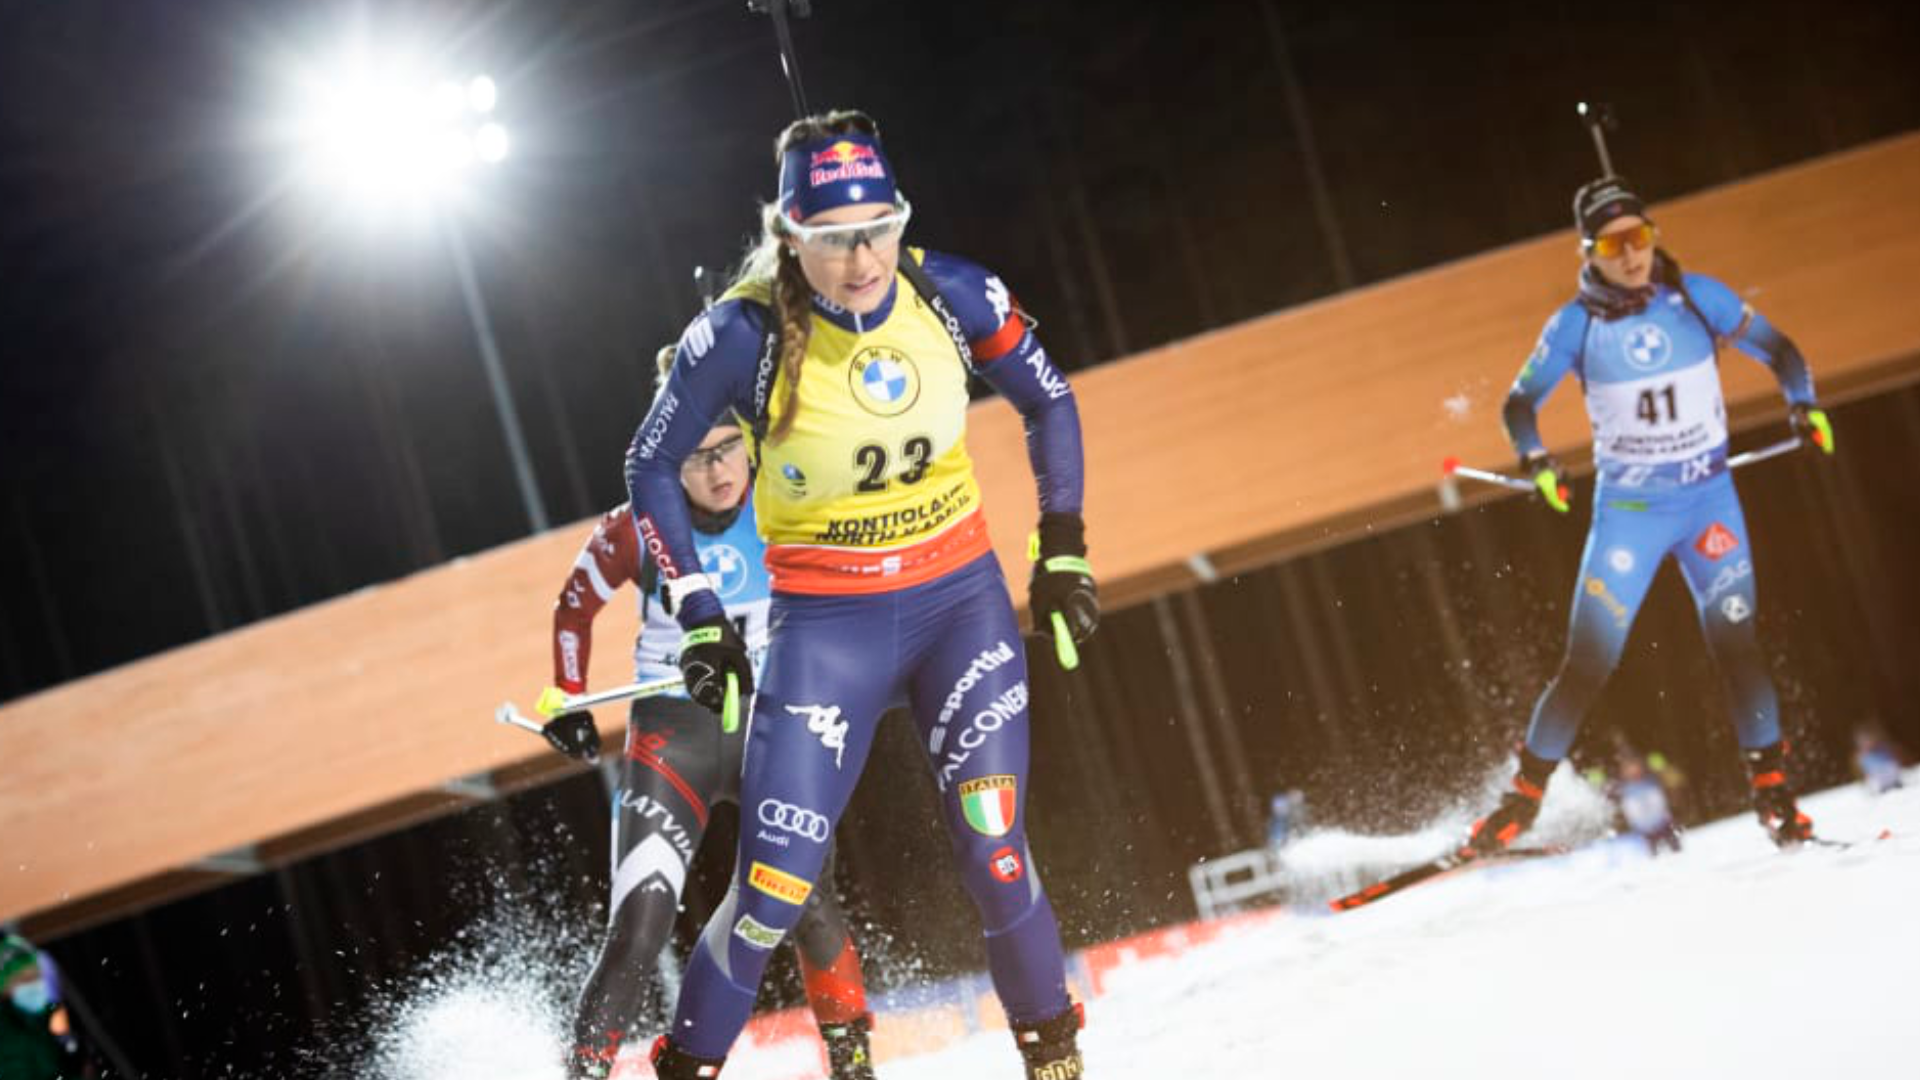 BIATHLON. GOLD MEDAL IN THE FIRST WORLD CUP STAGE IN KONTIOLAHTI.